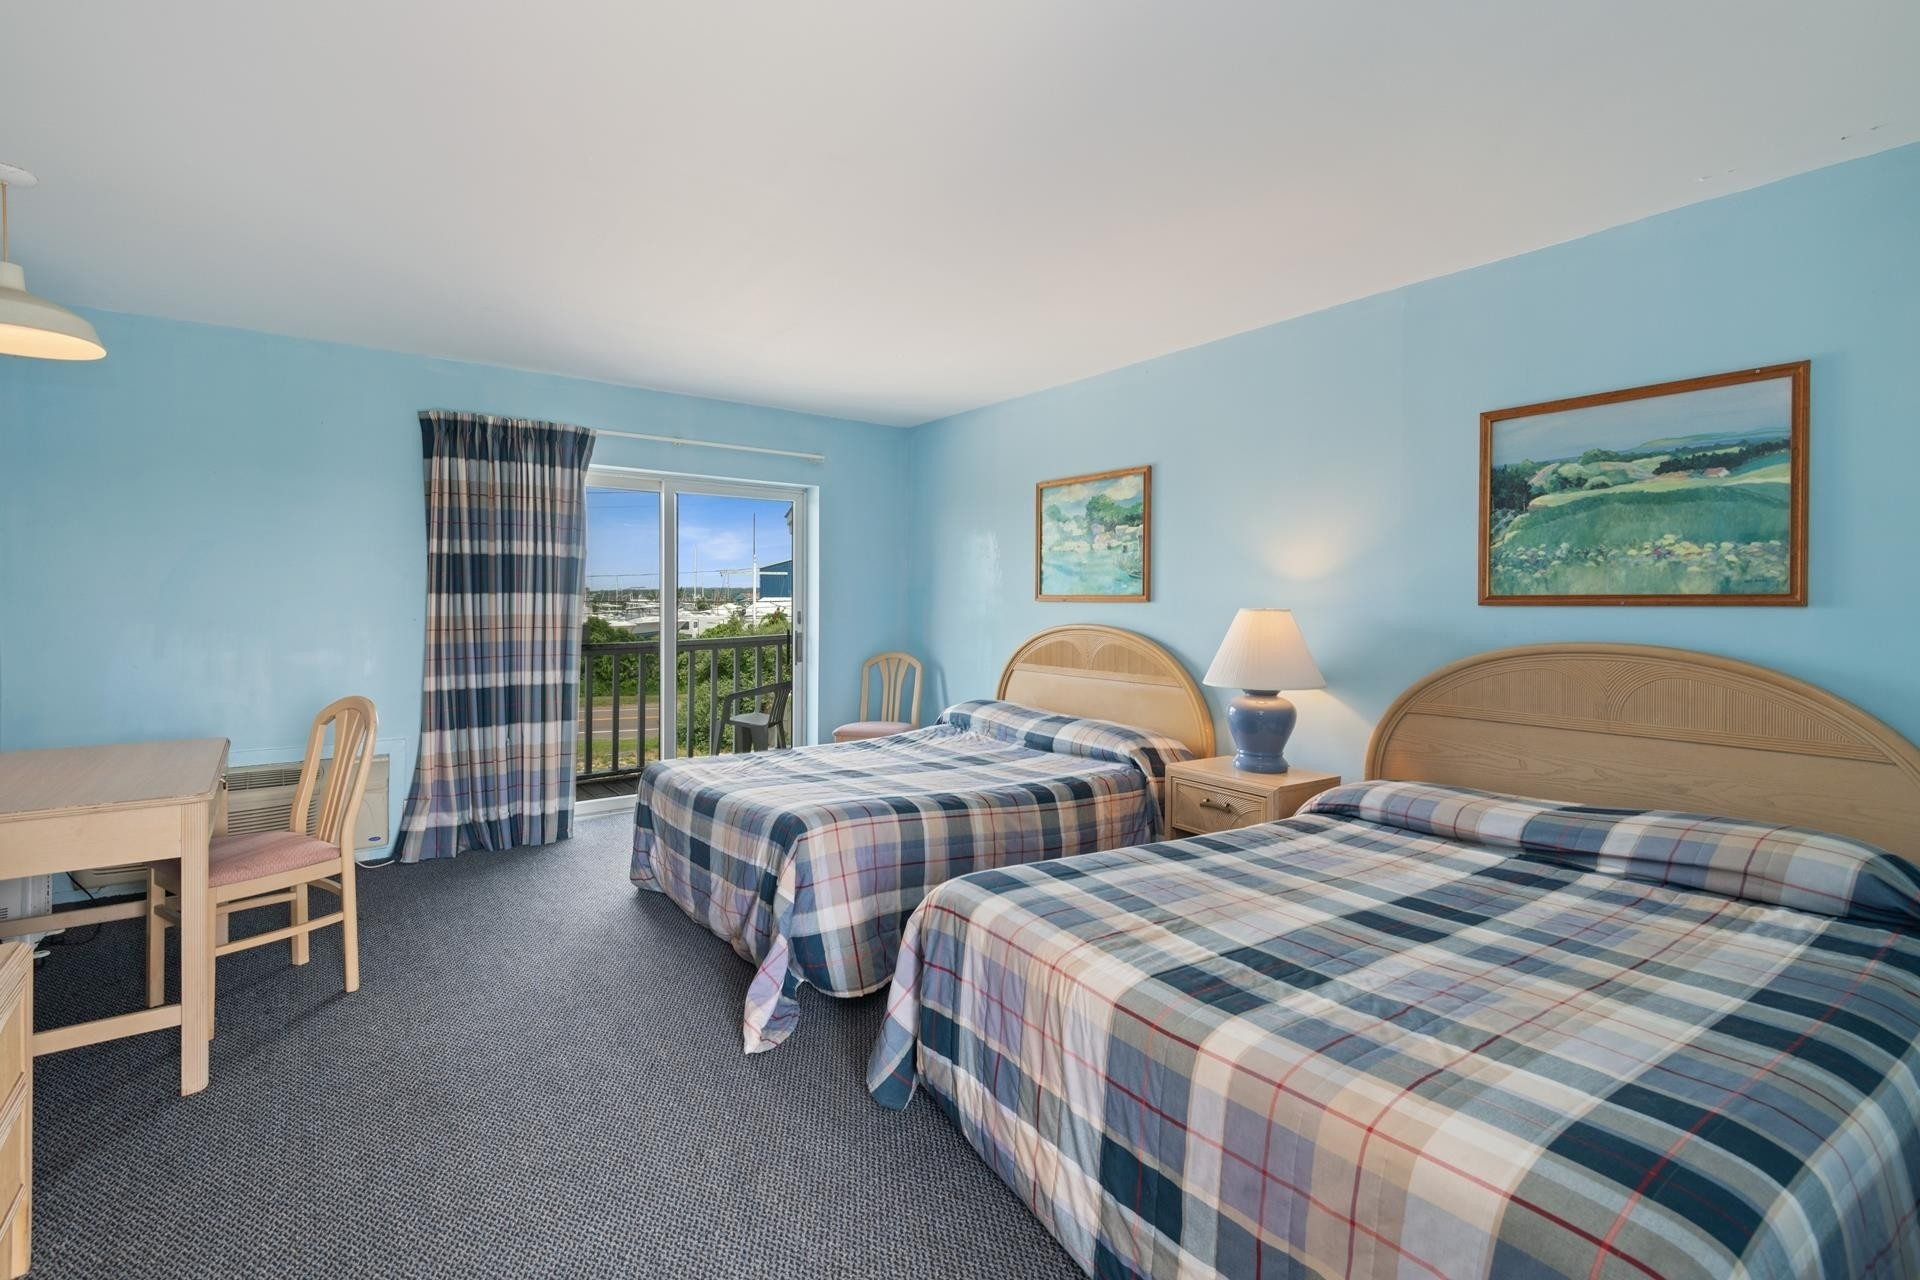 10. Hotel for Sale at Montauk, NY 11954